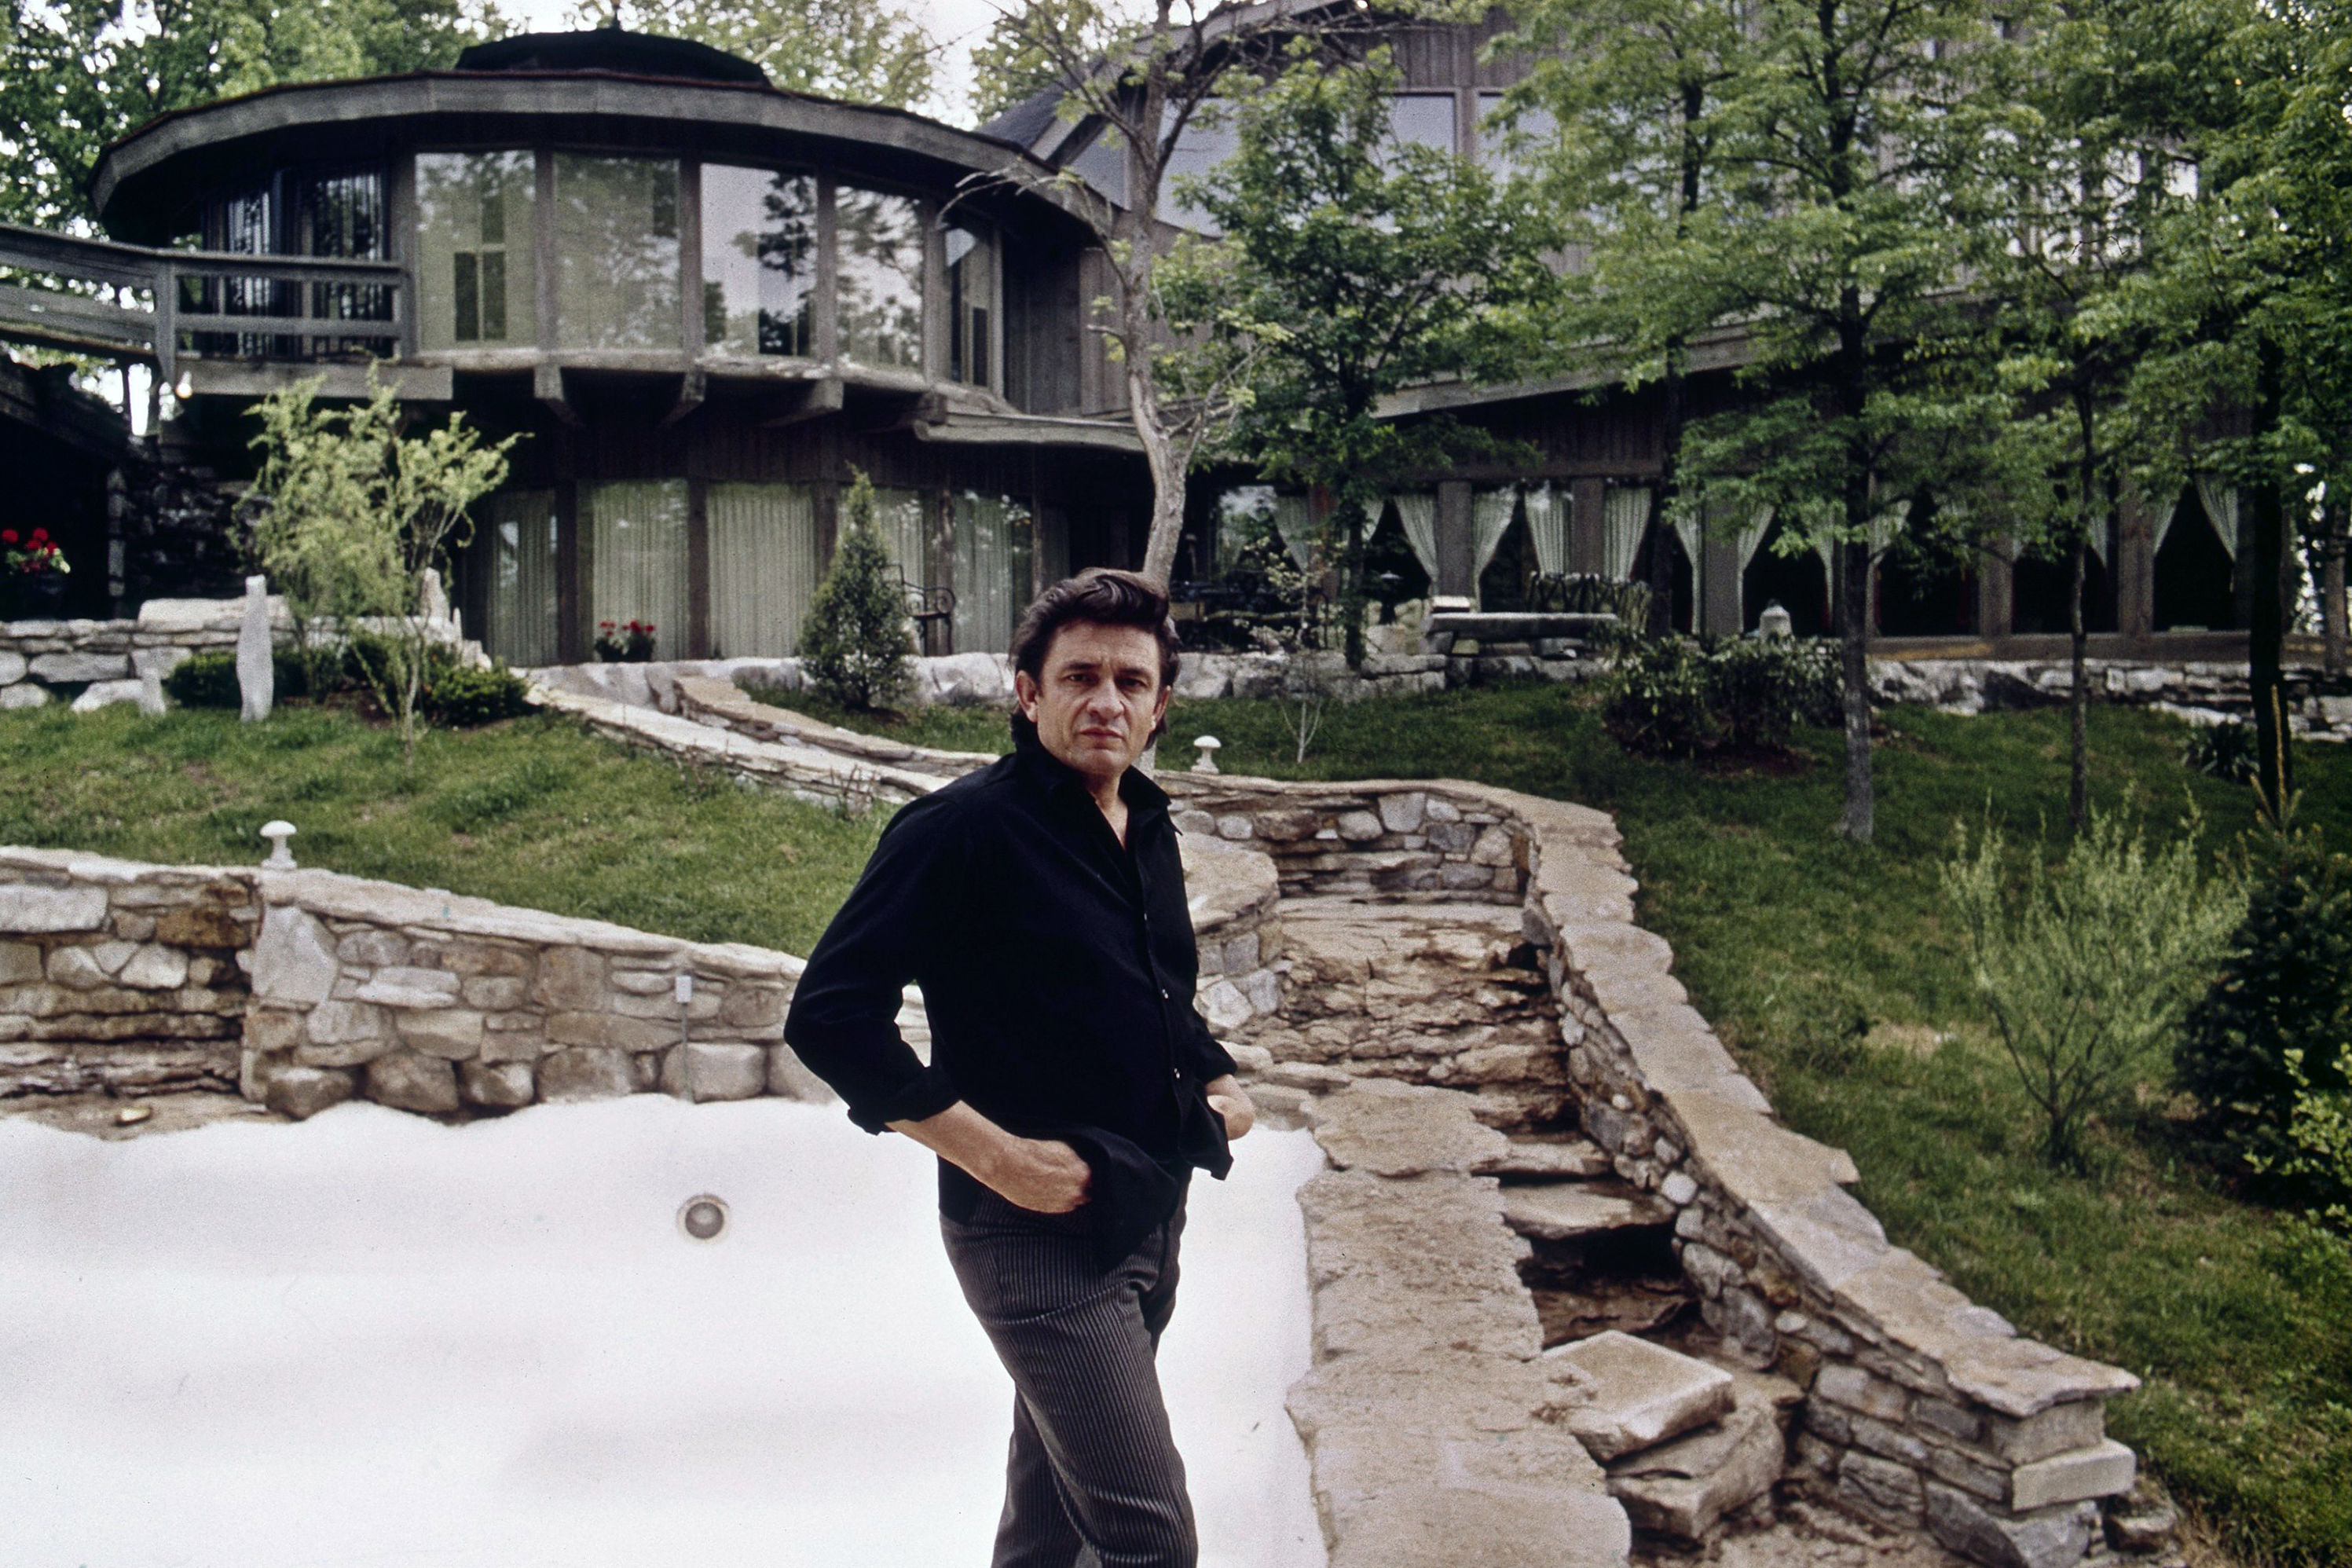 You Can Now Purchase Johnny Cash's Historic Tennessee Property